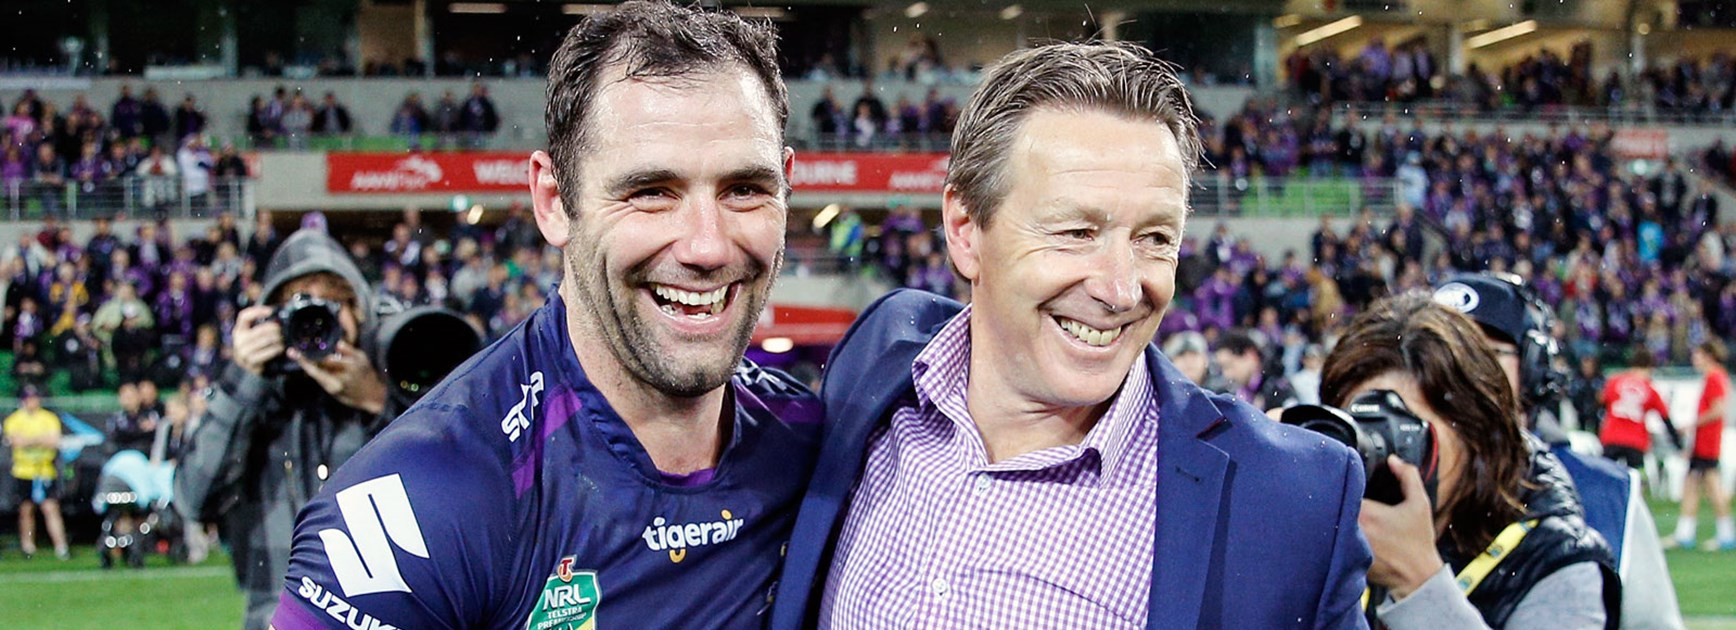 Storm captain Cameron Smith and coach Craig Bellamy following their side's Round 26 triumph over the Sharks.